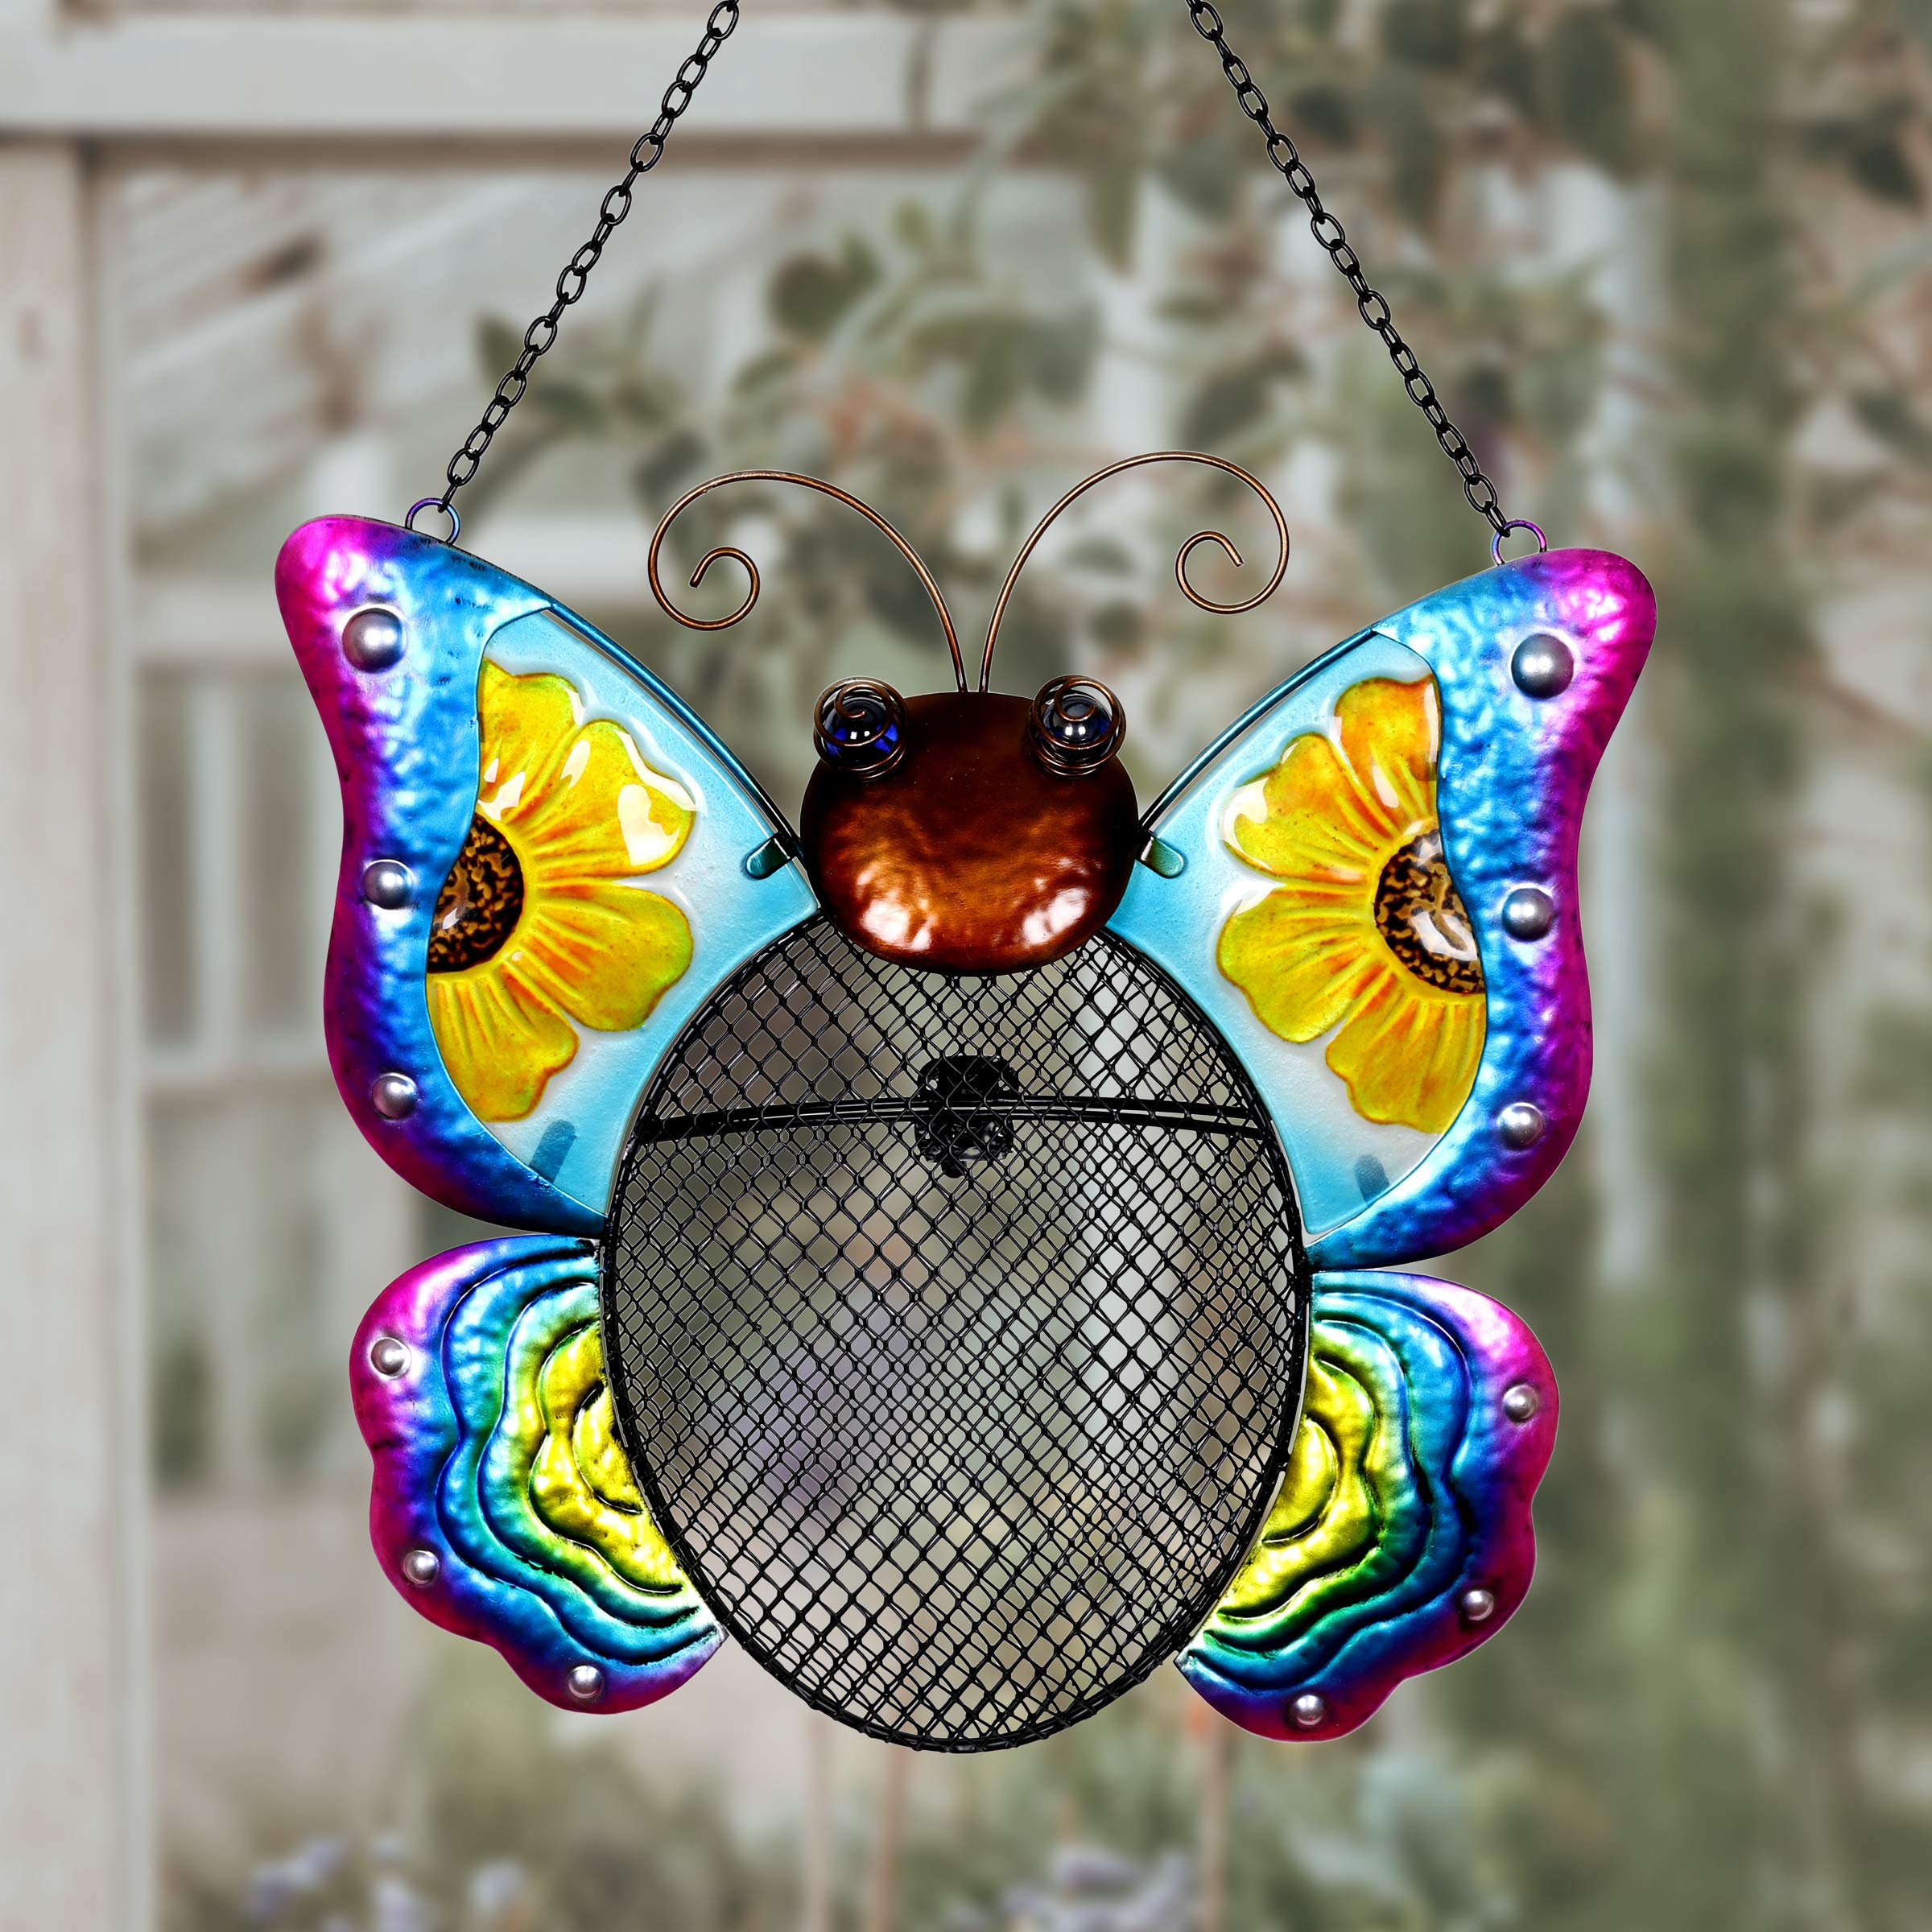 Exhart Metal Butterfly Hanging Bird Feeder w/Metal Mesh Seed Basket – Features Bright Sunflower Painting on Gradient Blue & Purple Butterfly Wings, Garden Art Metal Bird Feeders, 12 x 19 Inches